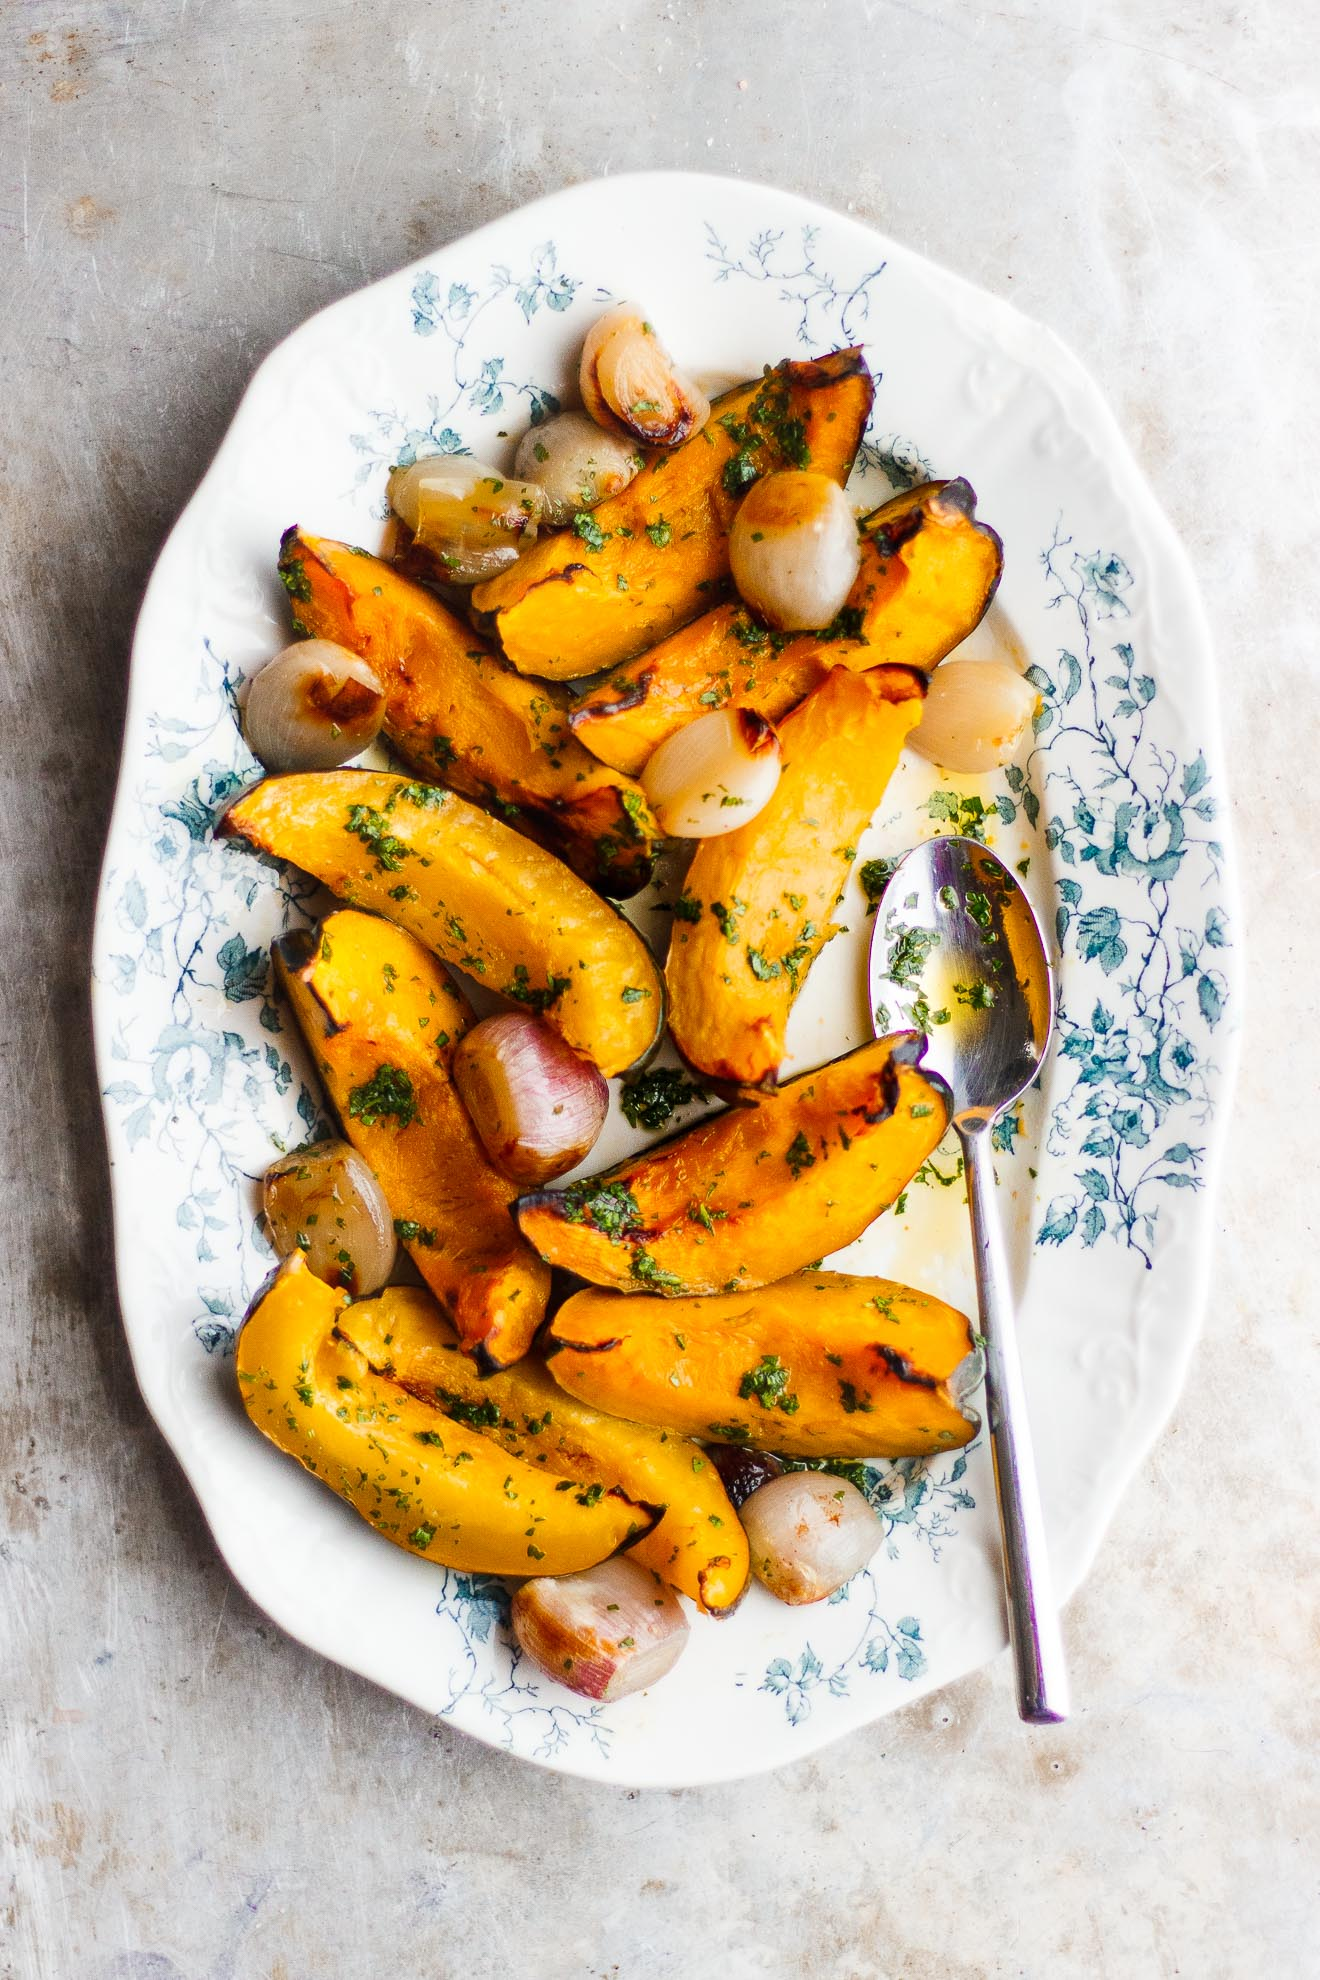 Roasted Acorn Squash with Shallots and Parsley Oil